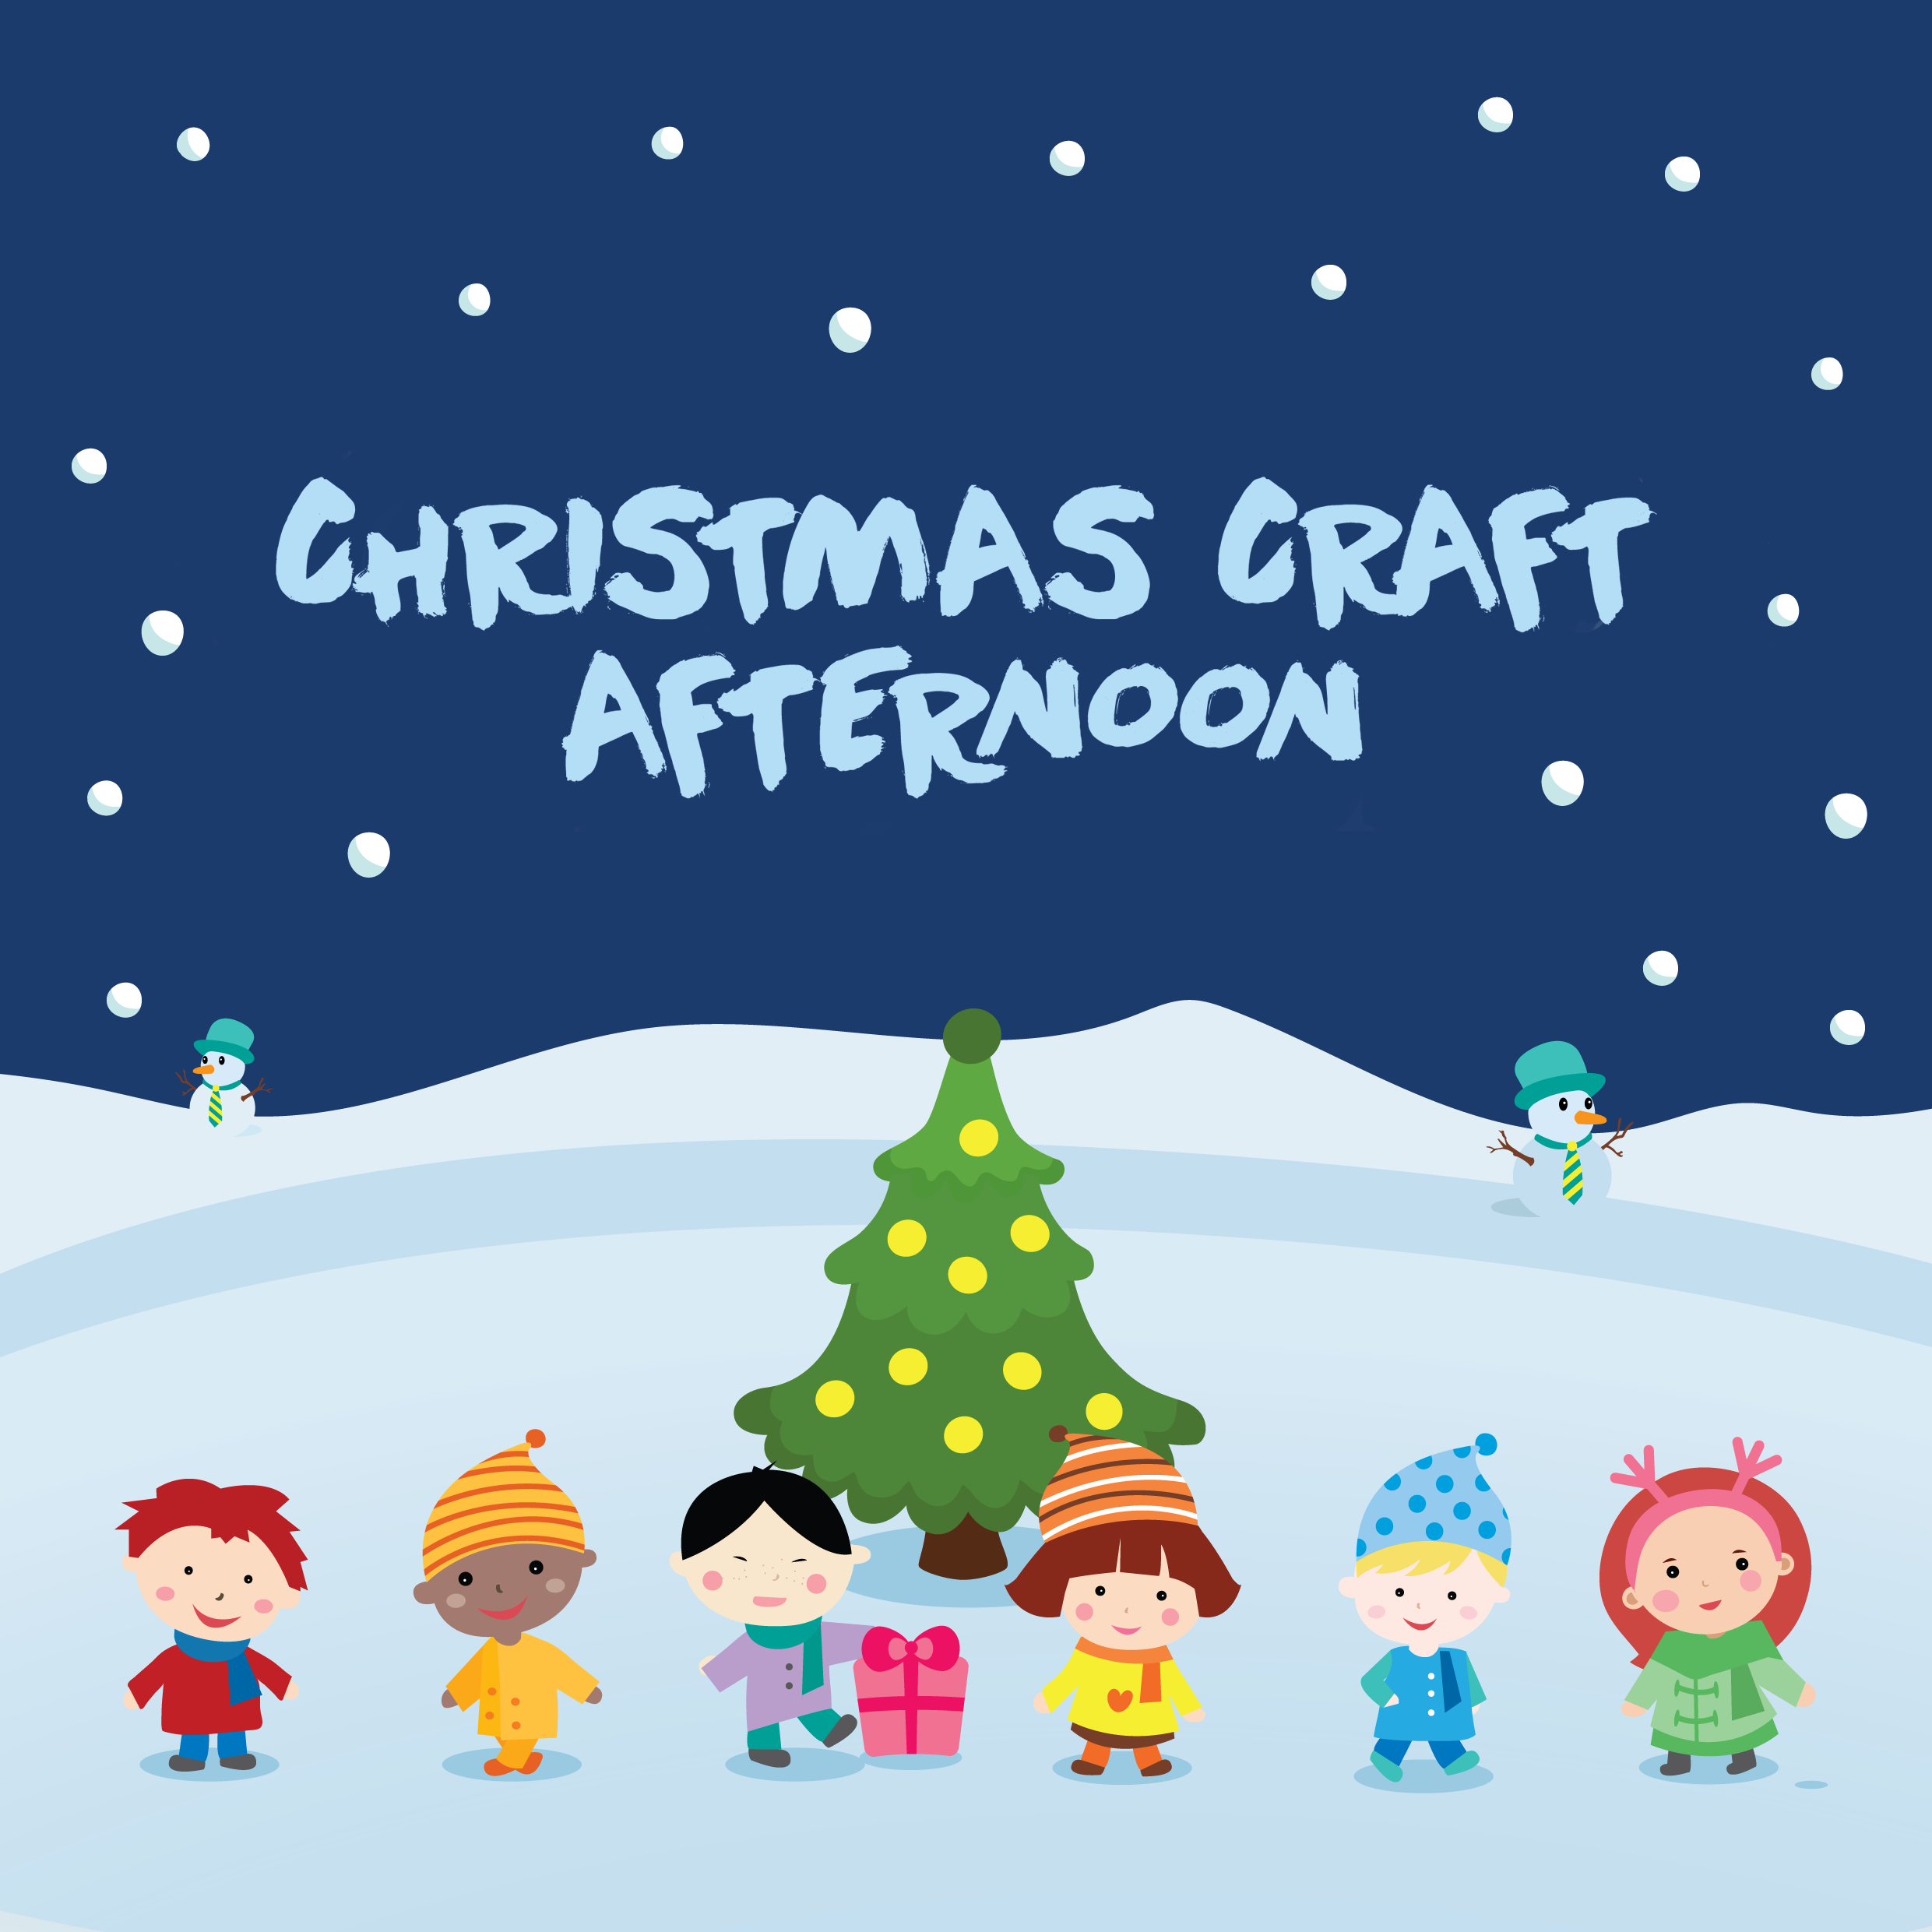 Join Us For An Afternoon of Christmas Crafts